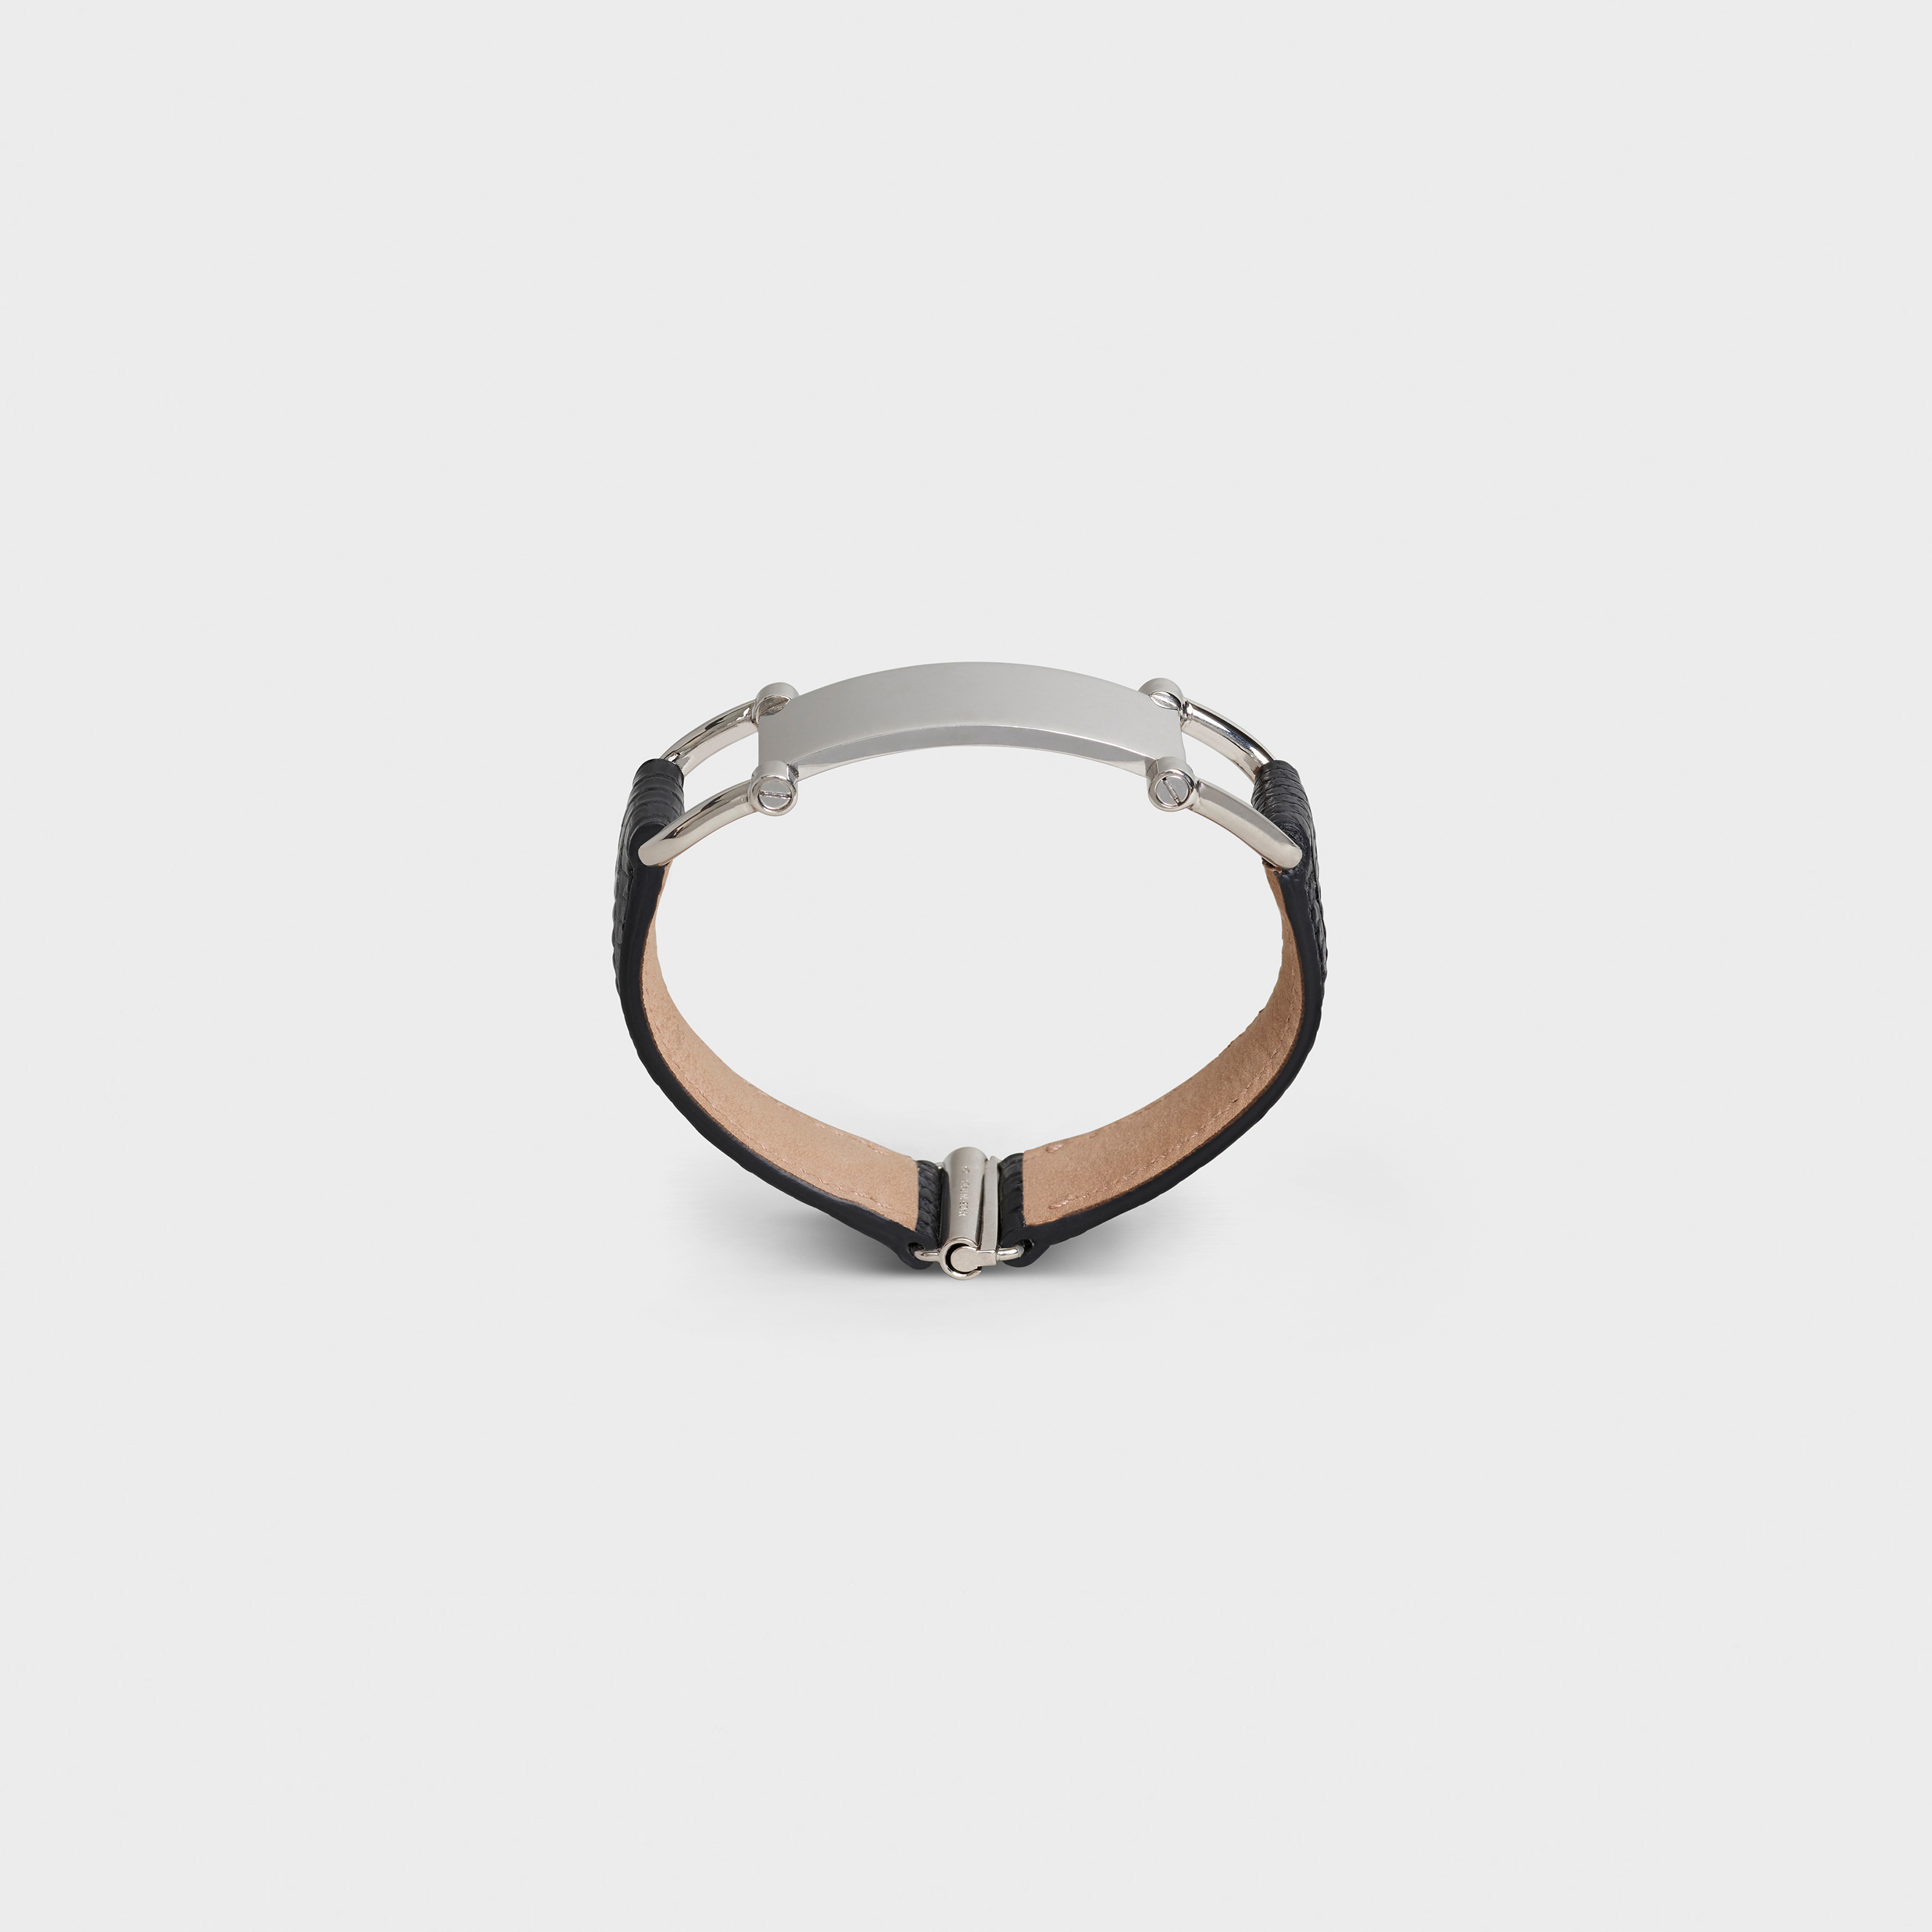 Celine Plaque Bracelet in Lizard and Brass with Rhodium finish | CELINE